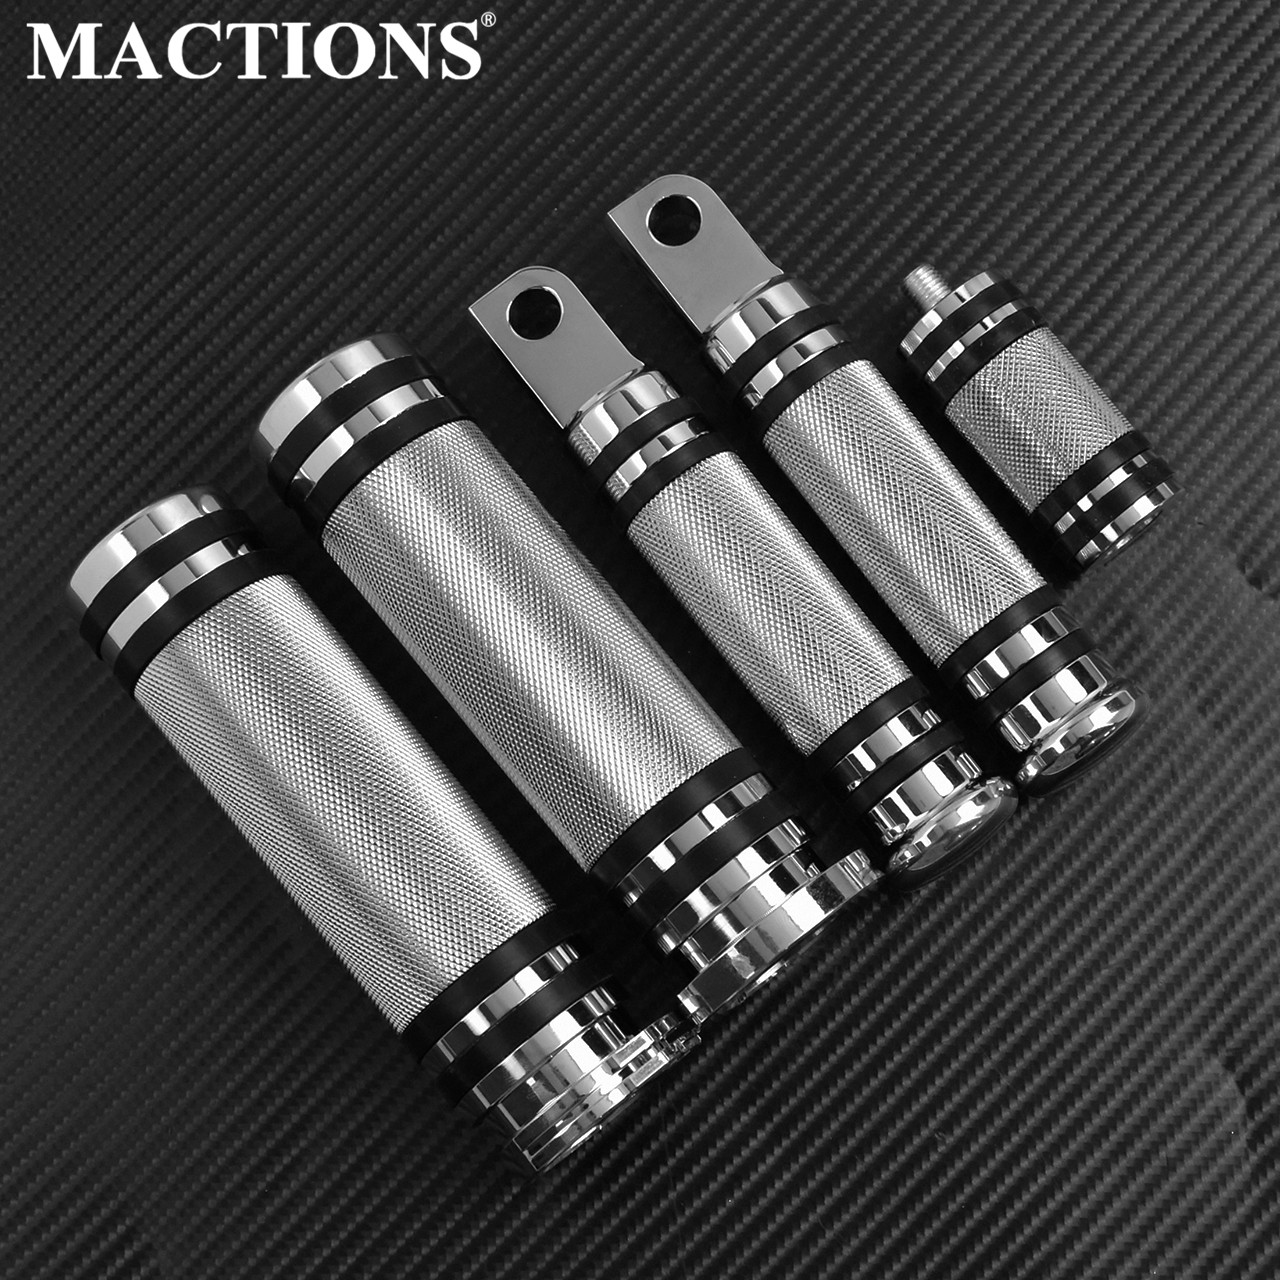 MACTIONS CNC Hand Bar Grips FootPegs Gear Shifter Pegs For Harley Sportster 883 Touring Dyna Breakout Softail Chopper Custom